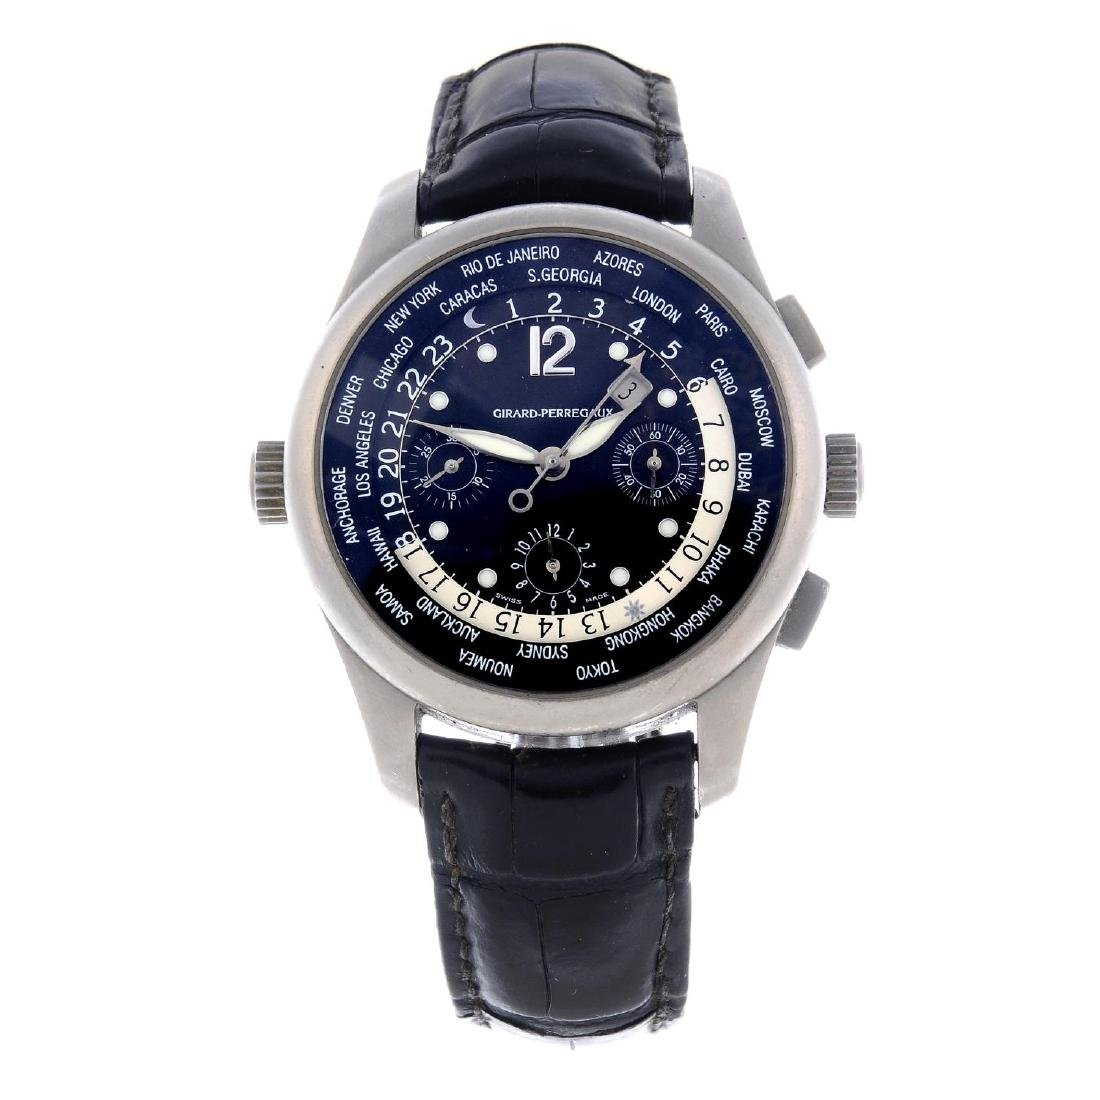 GIRARD PERREGAUX - a gentleman's WW.TC World Time